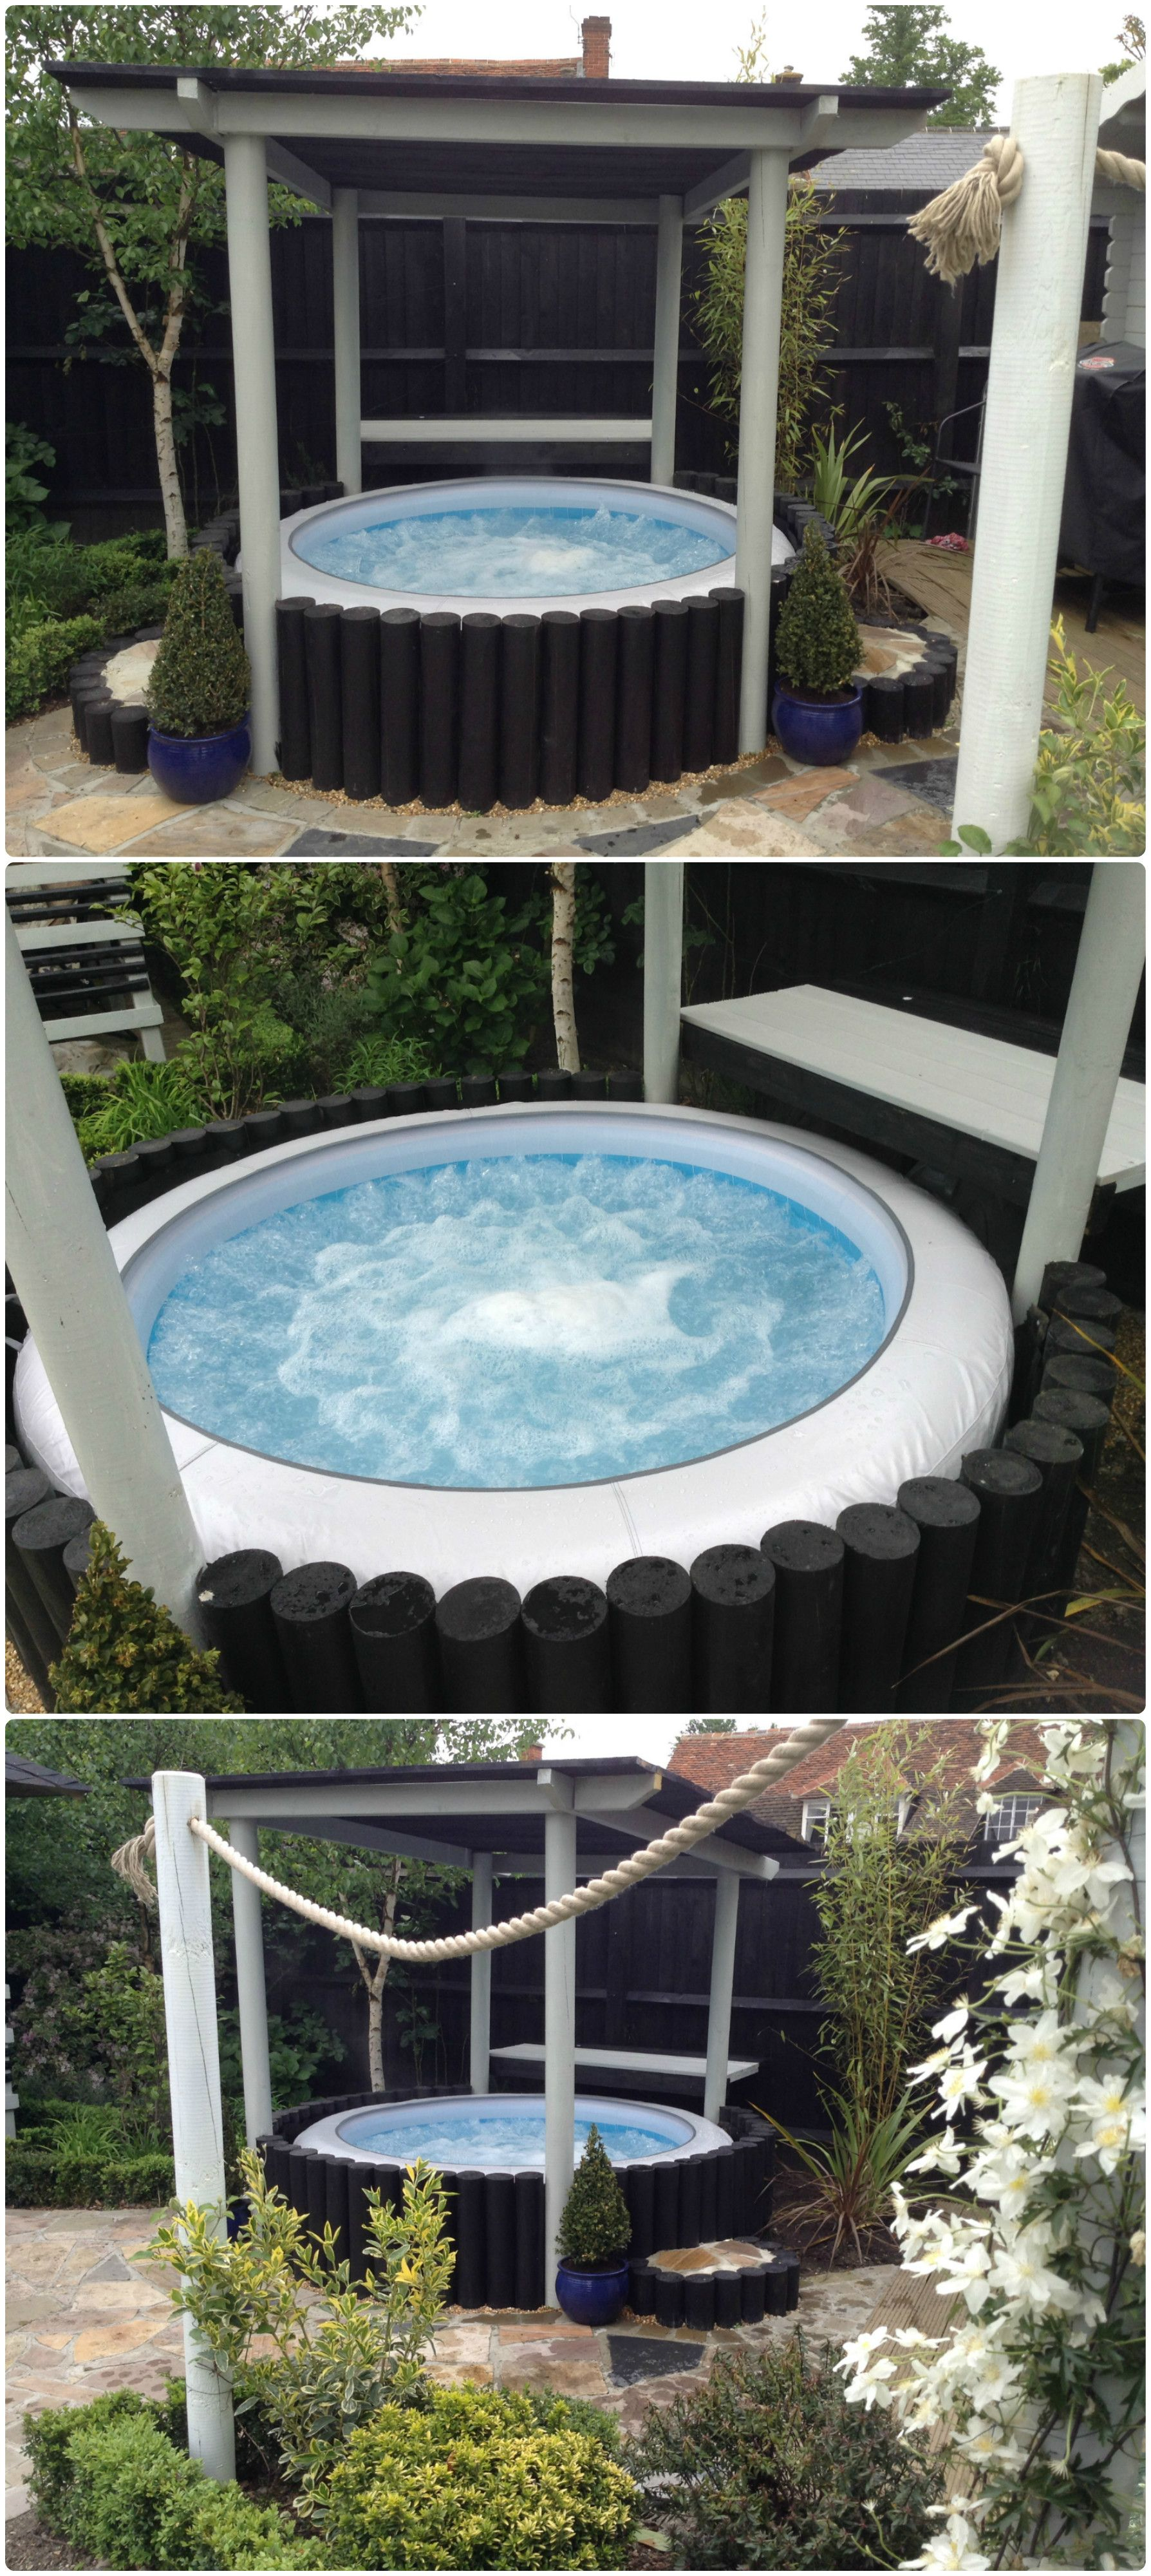 Jacuzzi Extérieur Hors Sol Inflatable Hot Tub Surround For Lay Z Spa Everything And